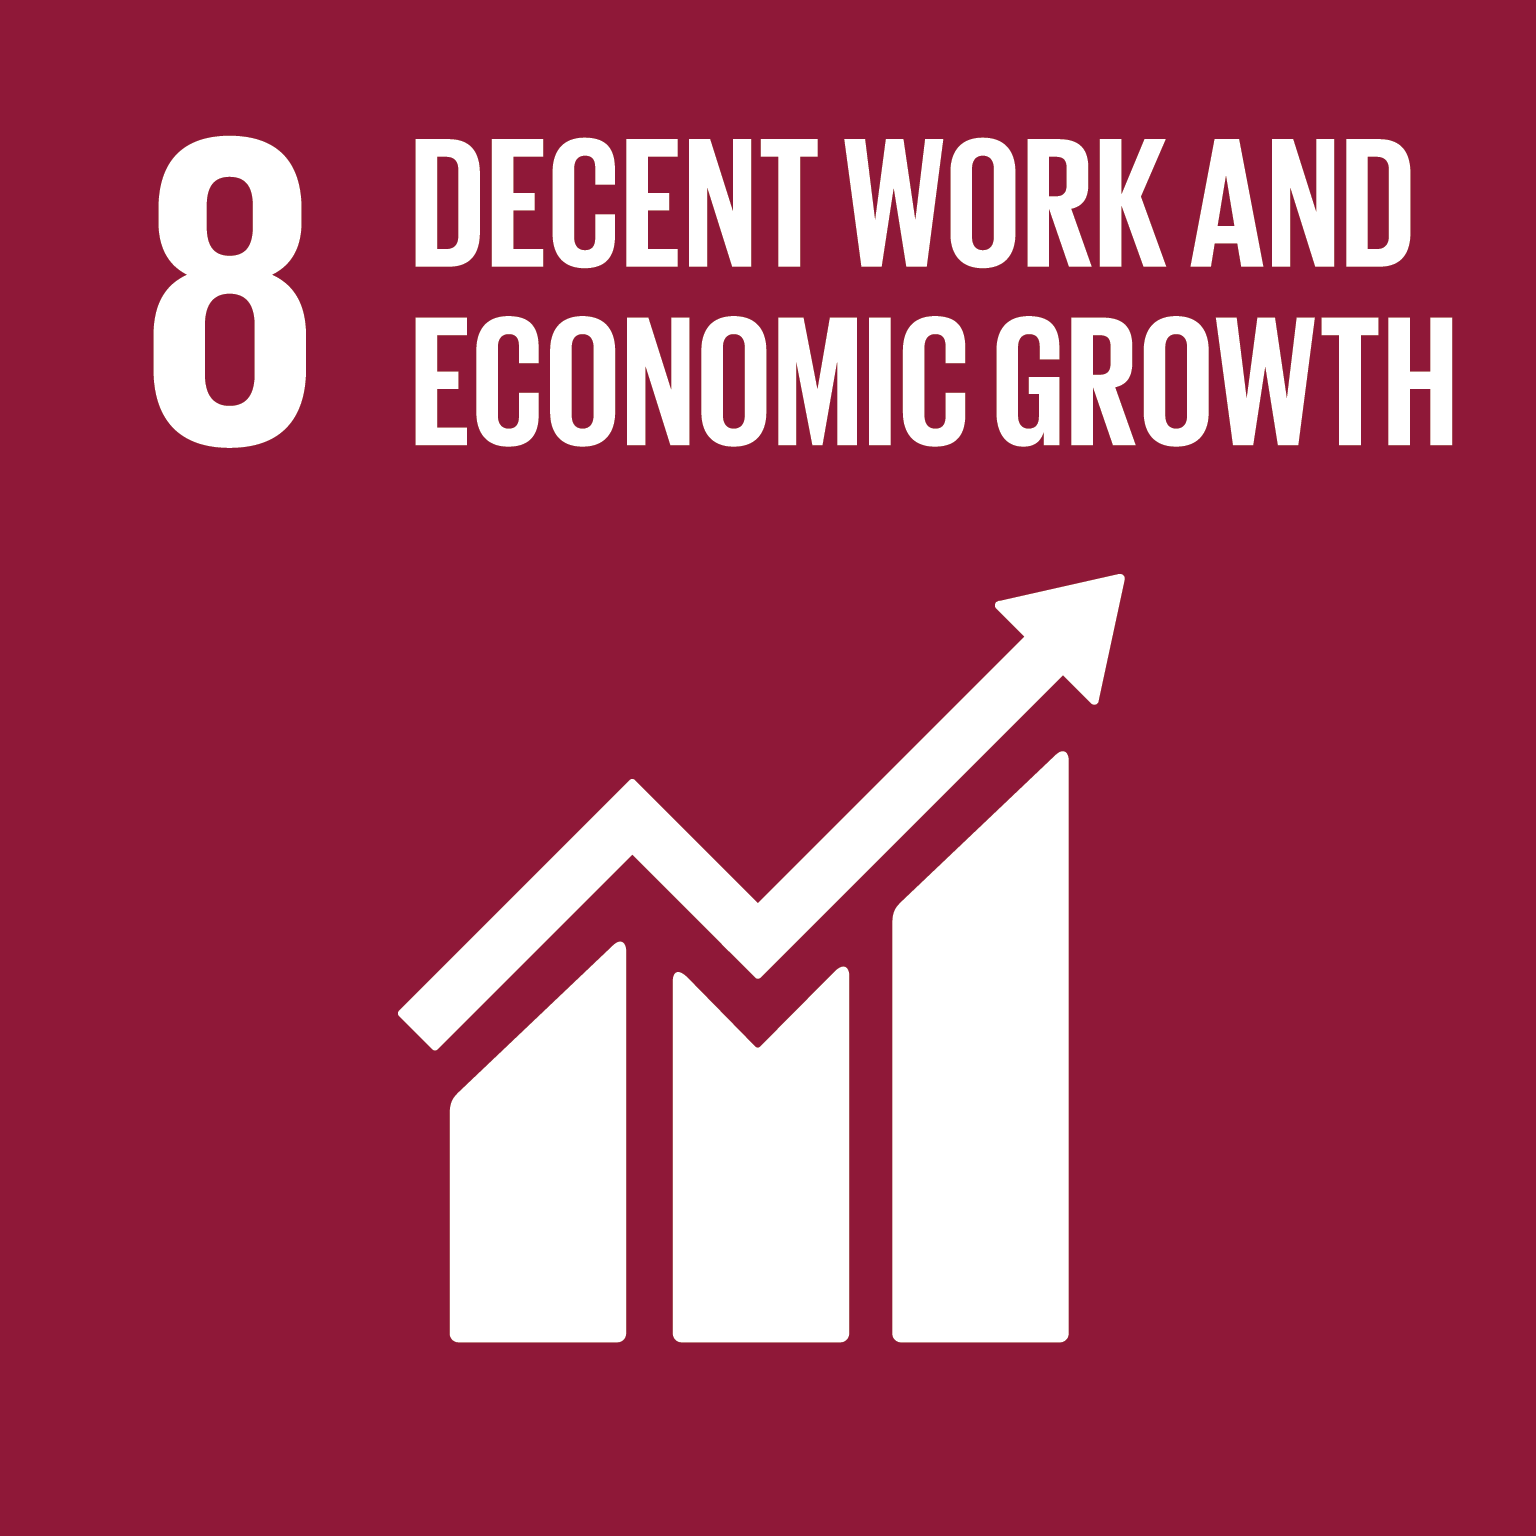 Promote sustained, inclusive and sustainable economic growth, full and productiv